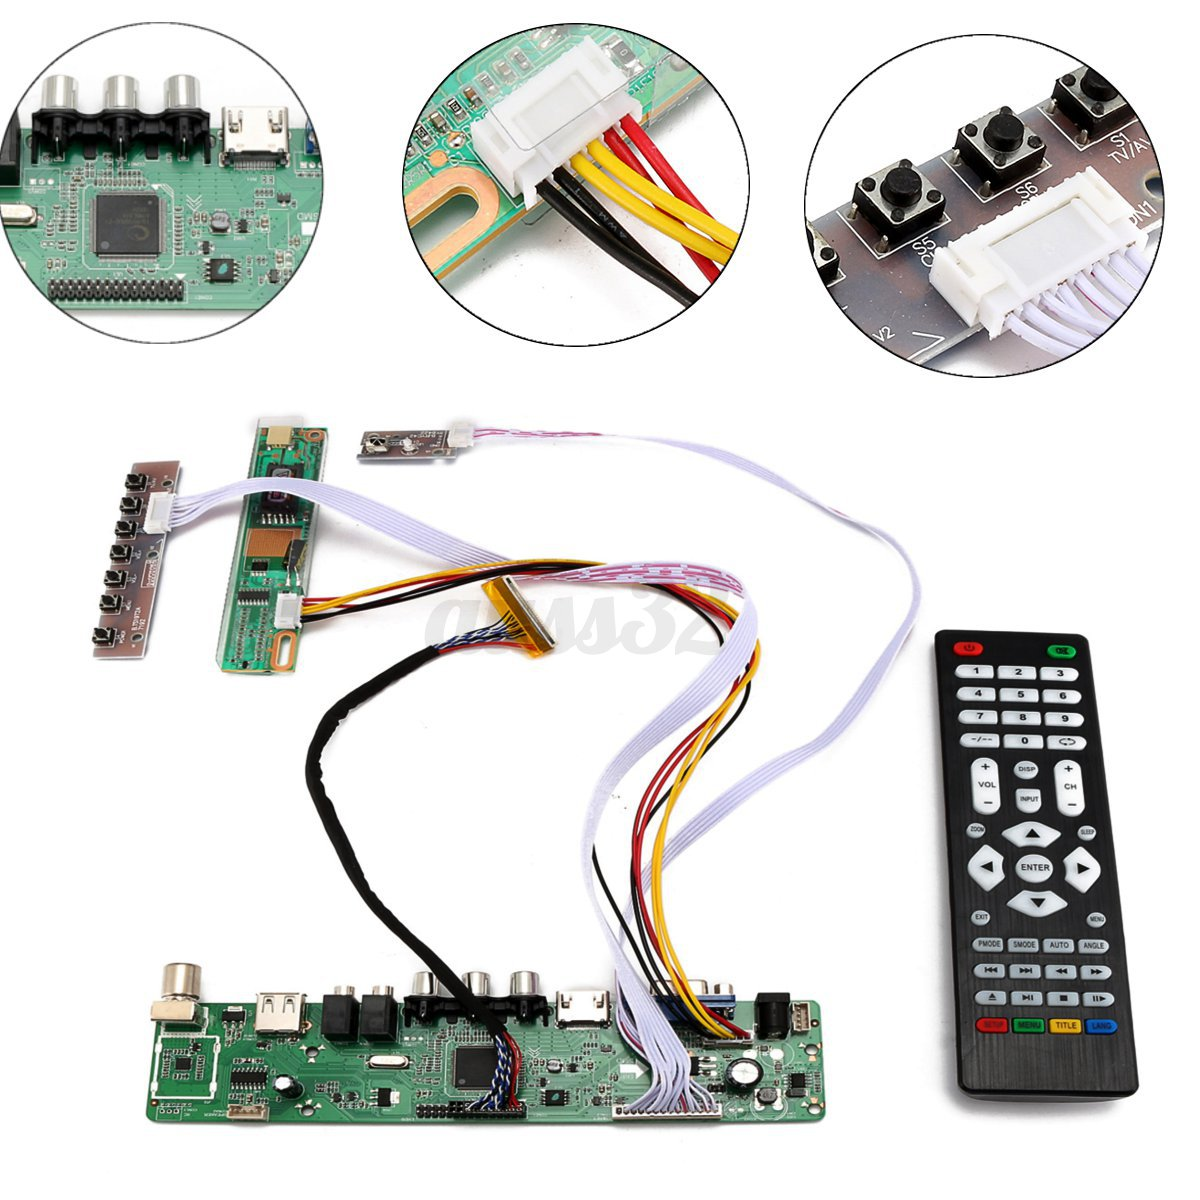 tv universal lcd led screen controller board diy monitor kit with remote control. Black Bedroom Furniture Sets. Home Design Ideas